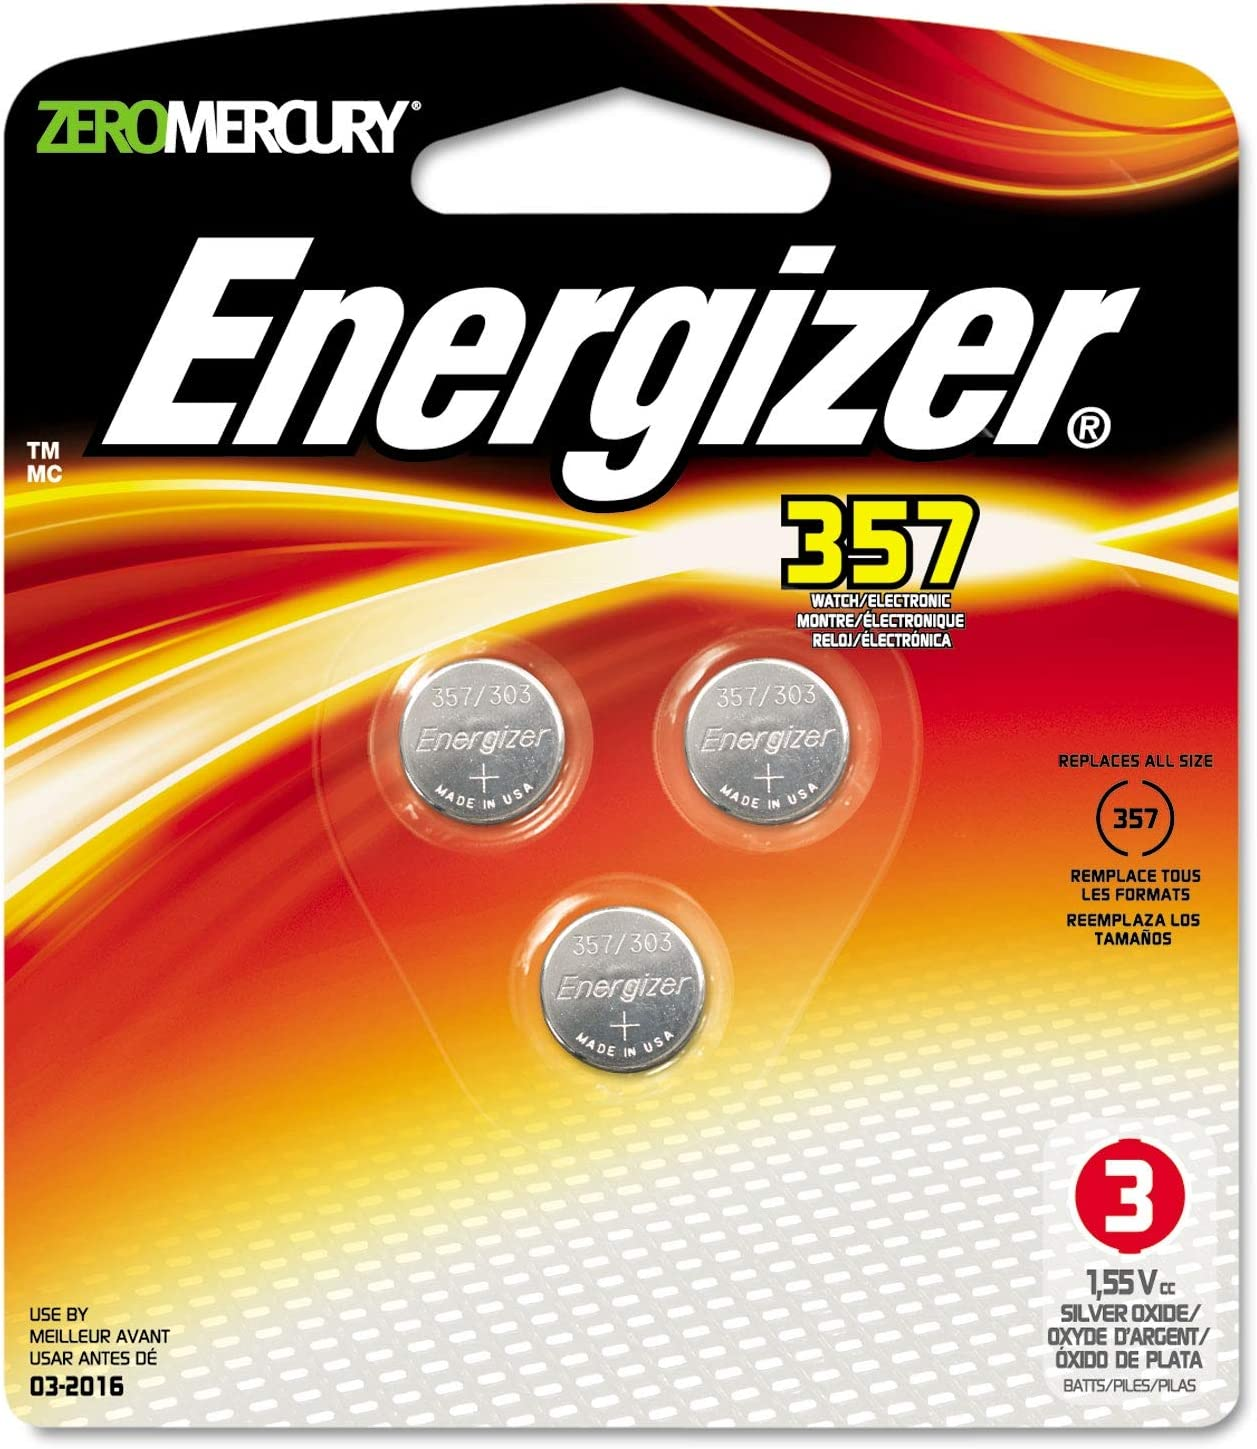 Energizer Battery 357BPZ-3 Watch Button Purchase Calculator Max 82% OFF Cell